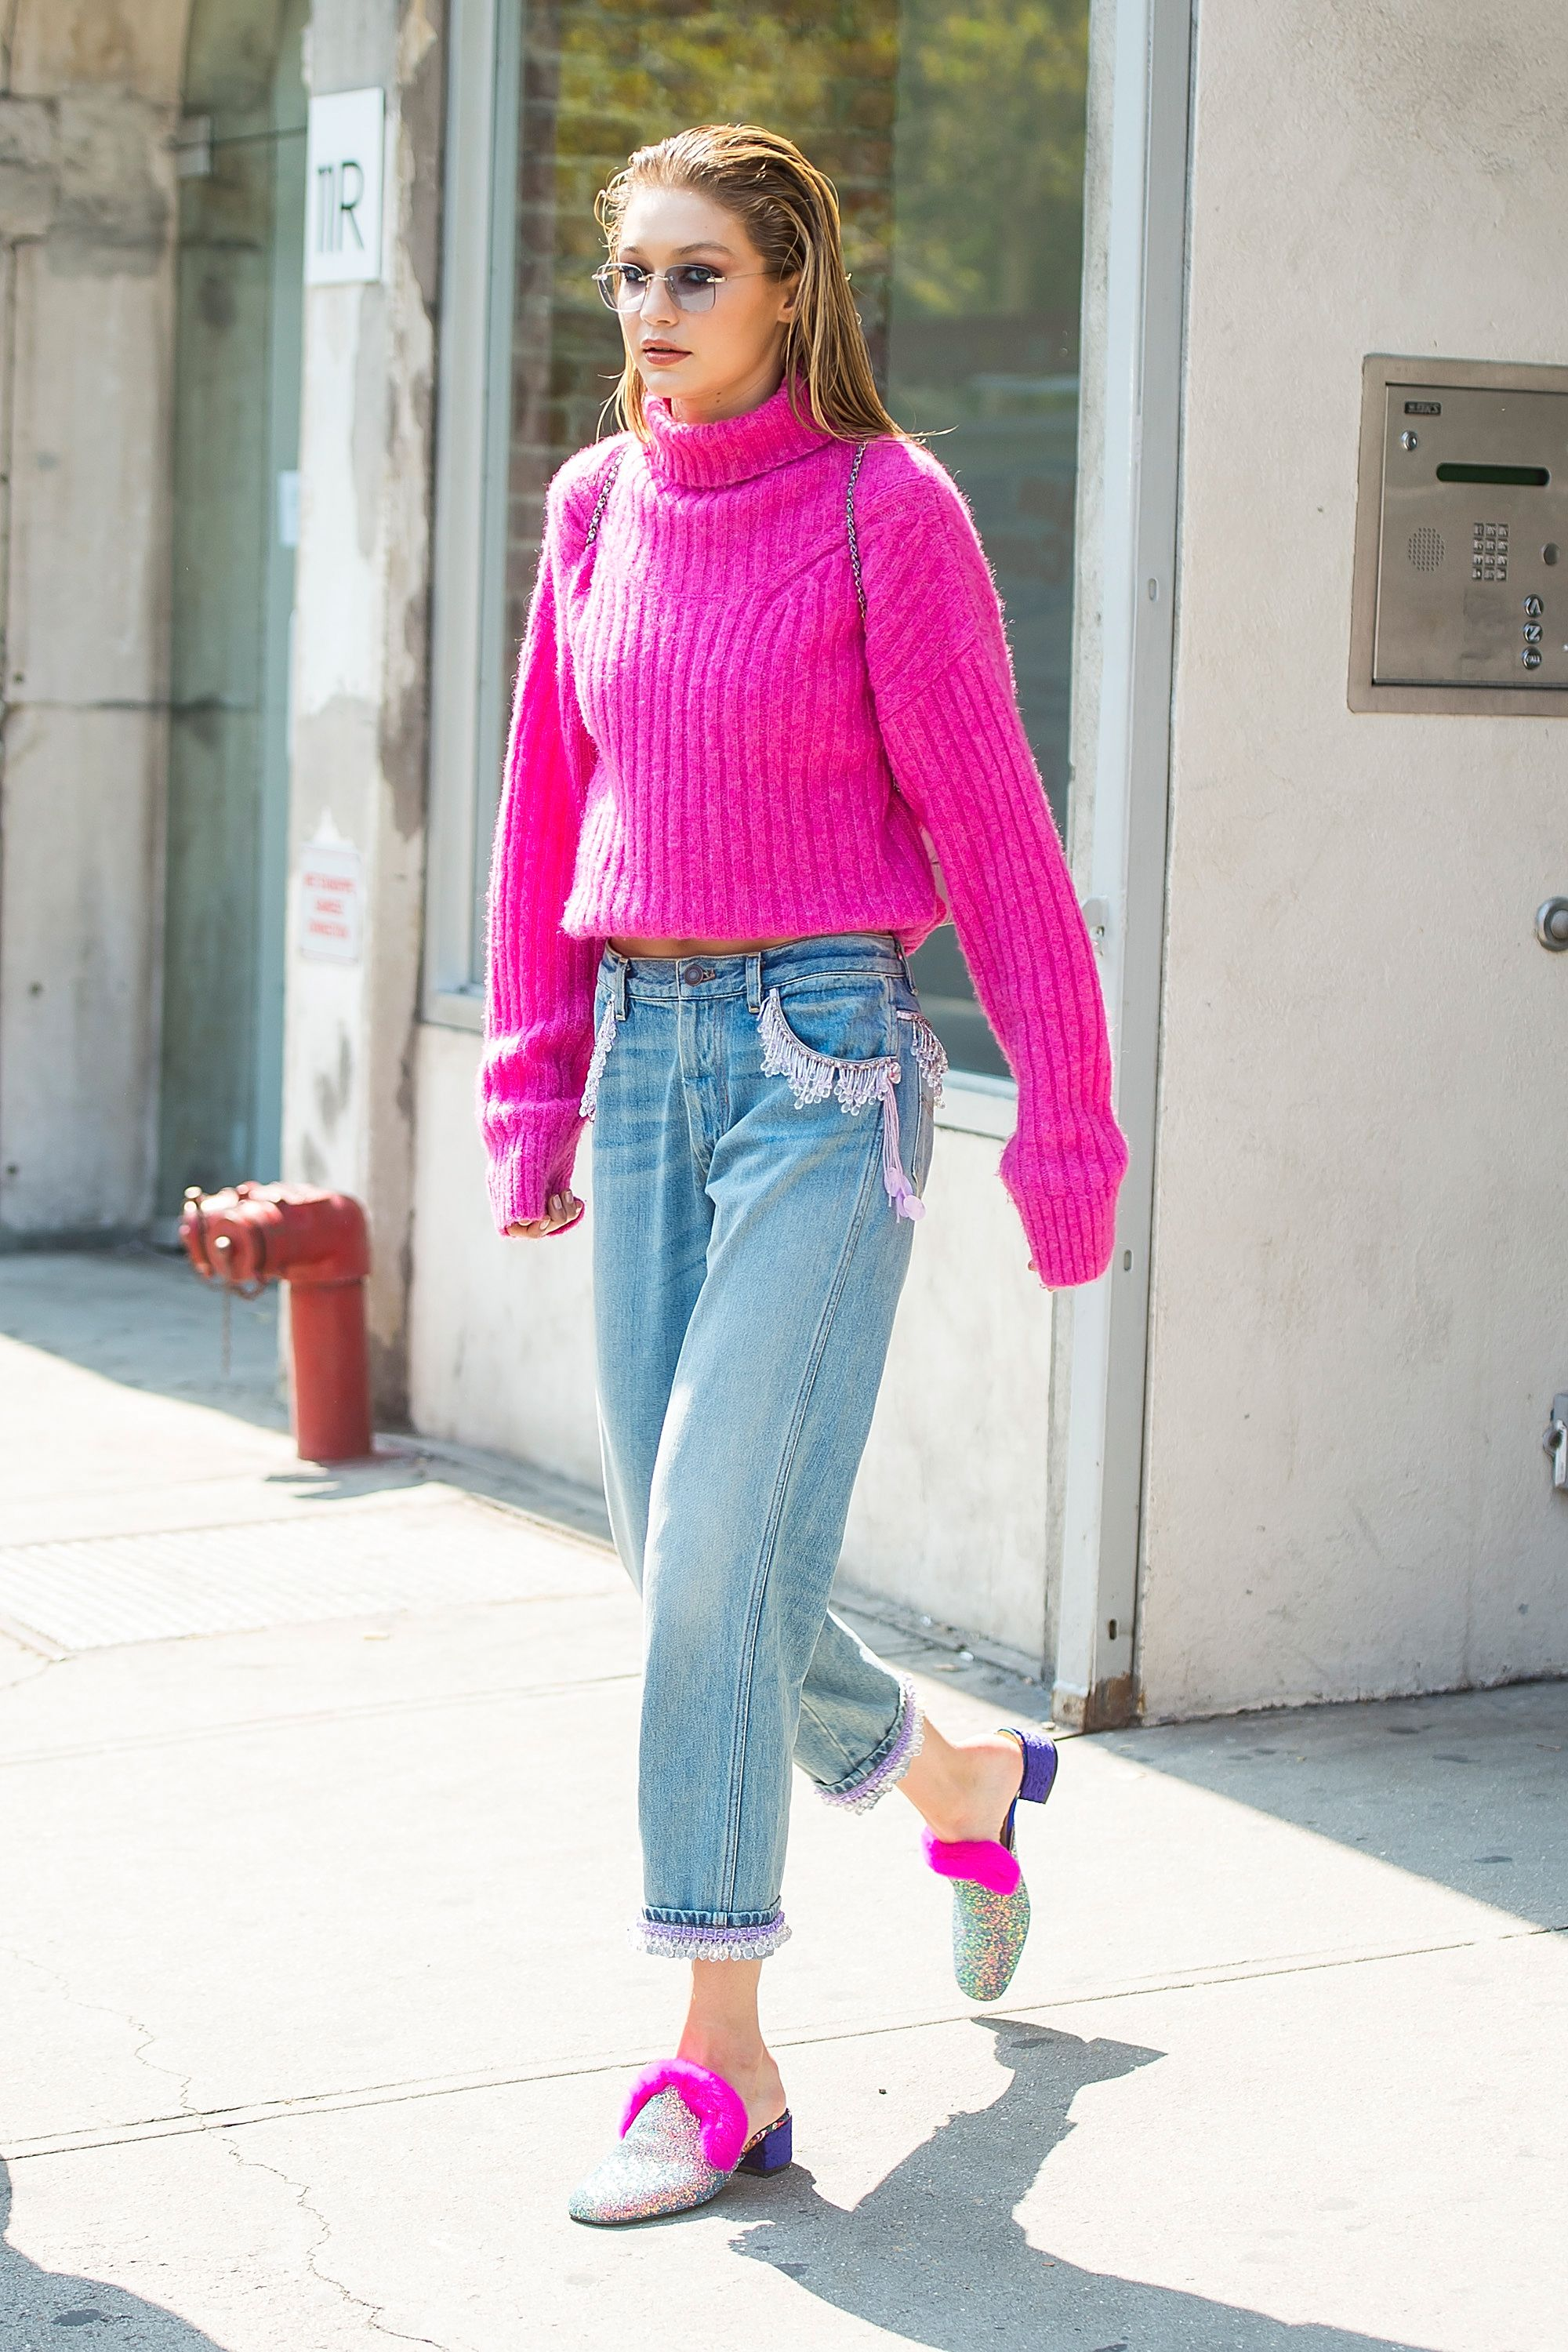 September 11, 2017 During New York Fashion Week, Hadid was spotted in a magenta turtleneck sweater from 3.1 Phillip Lim and Marc Jacobs jeans. The furry trim on her Christian Louboutin mules matched her sweater perfectly.